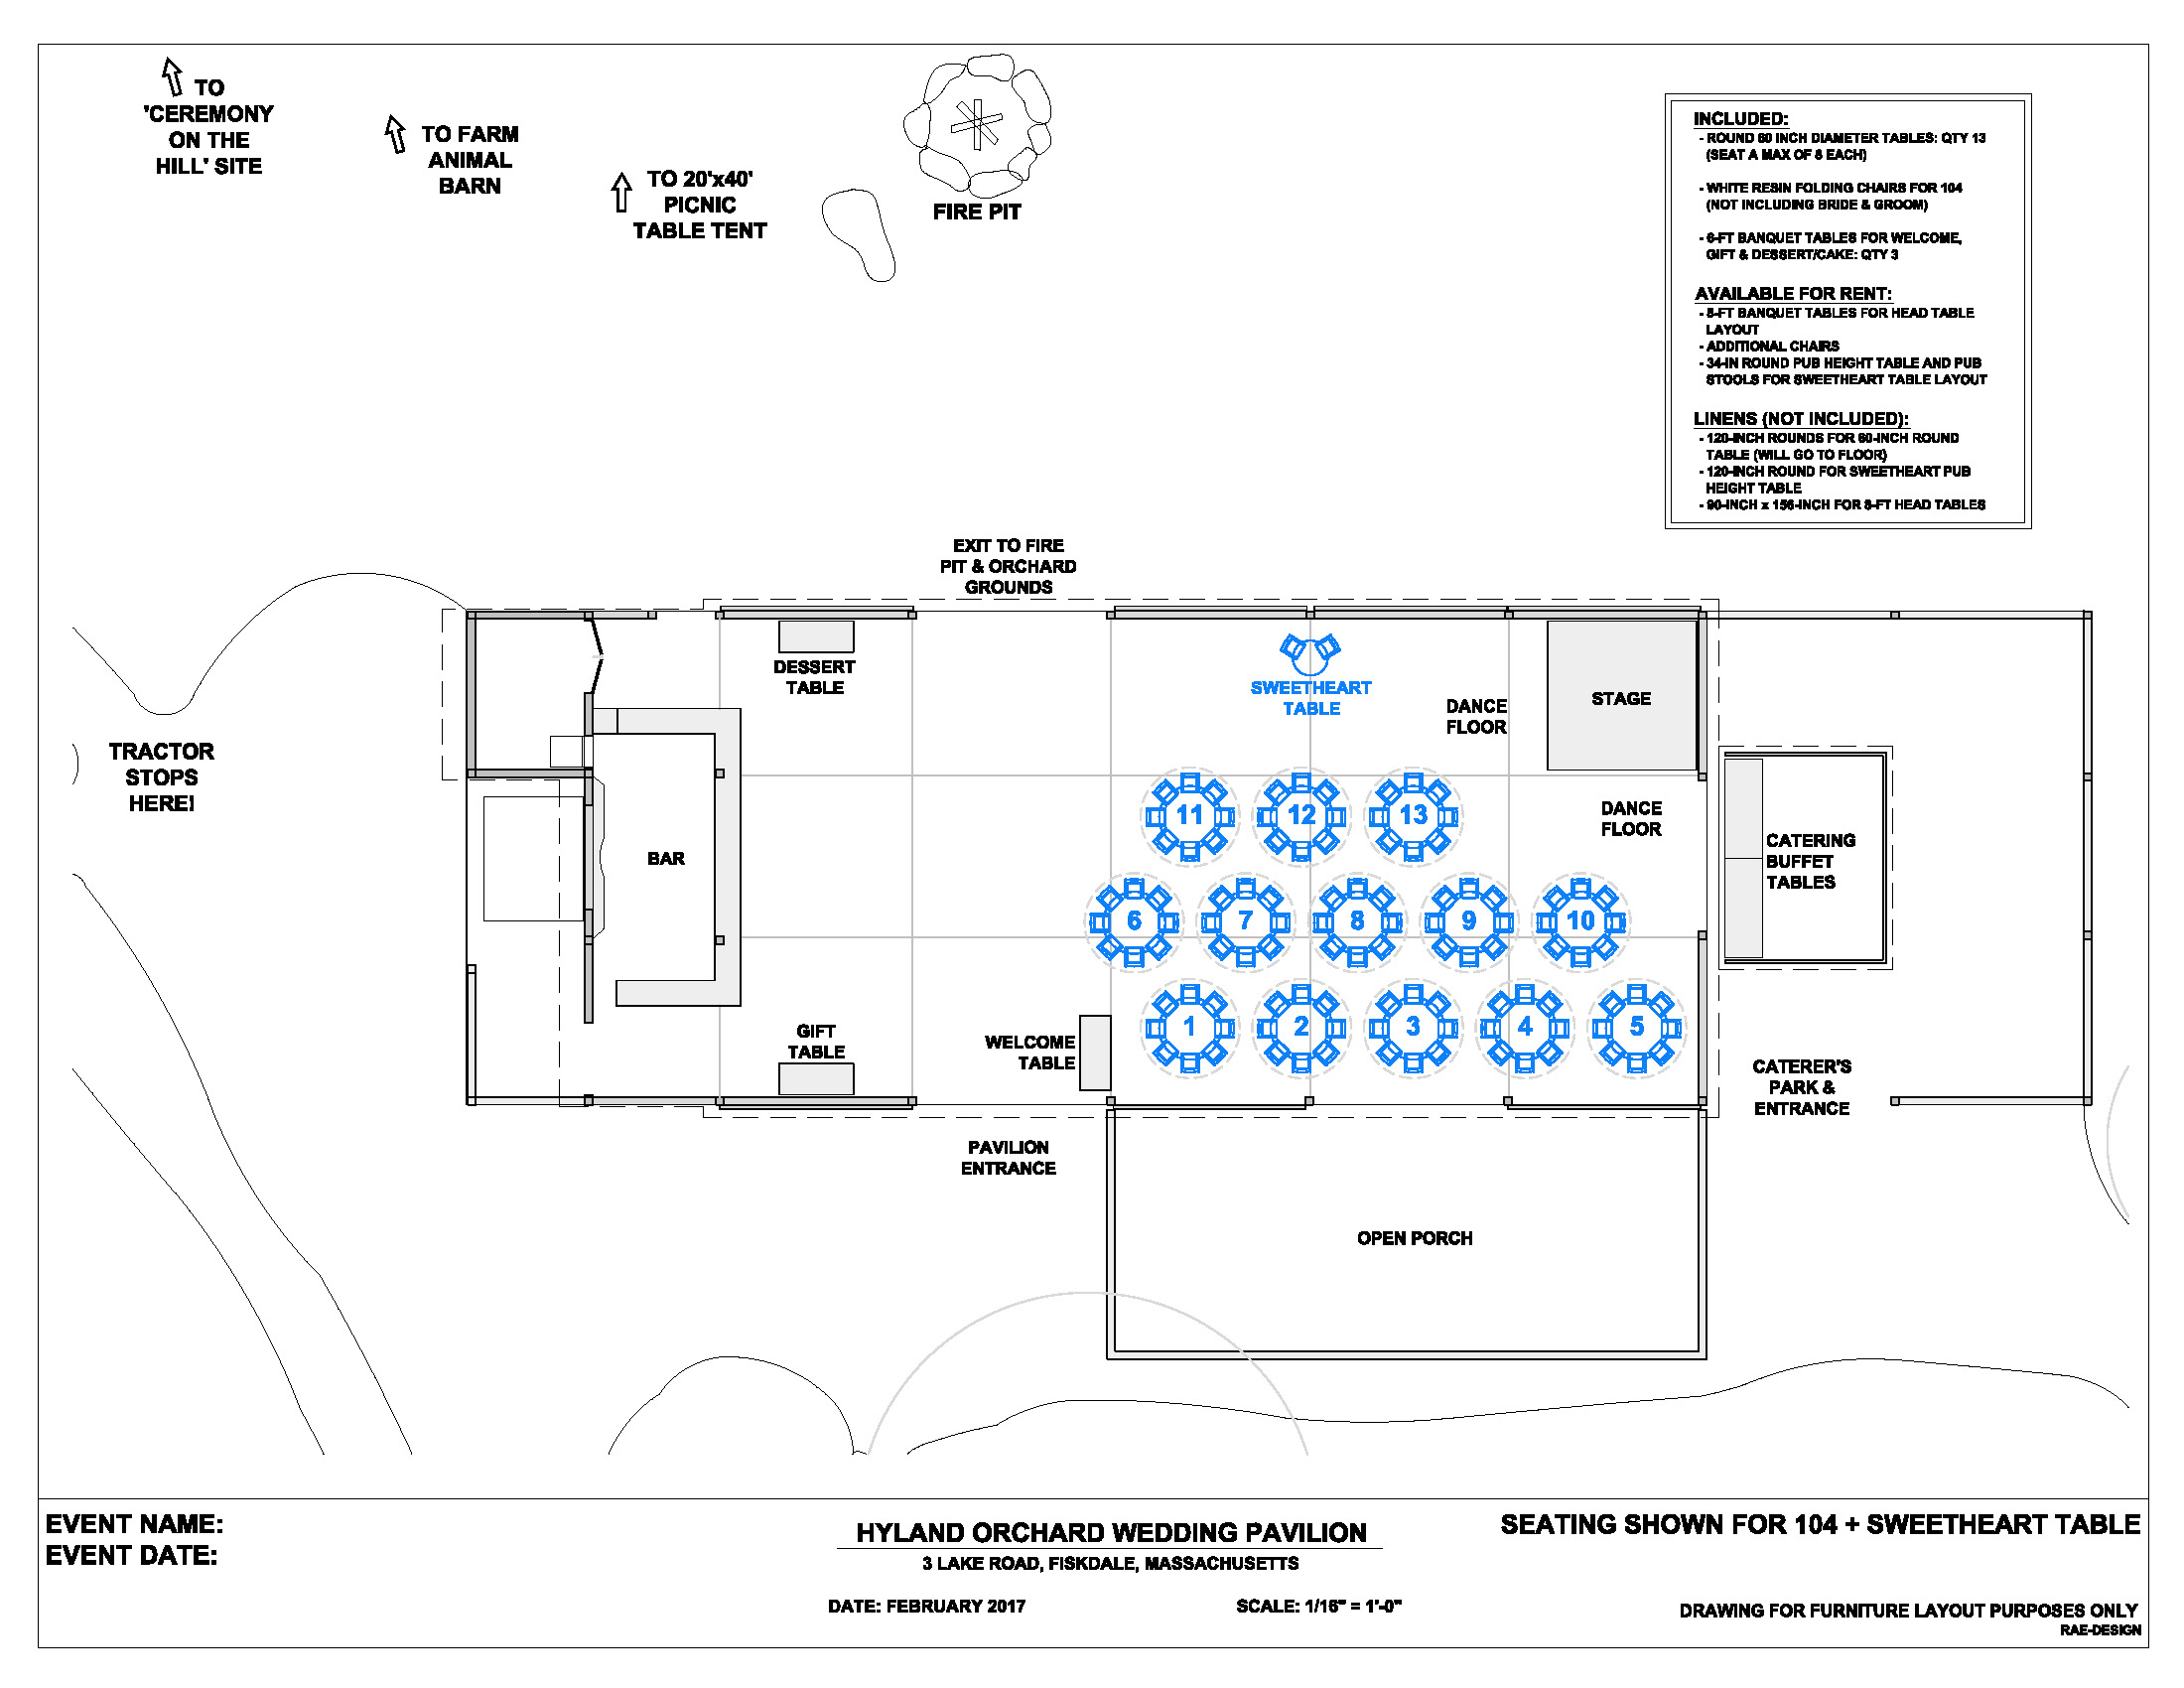 banquet plan space layout use this software to lay out the typical